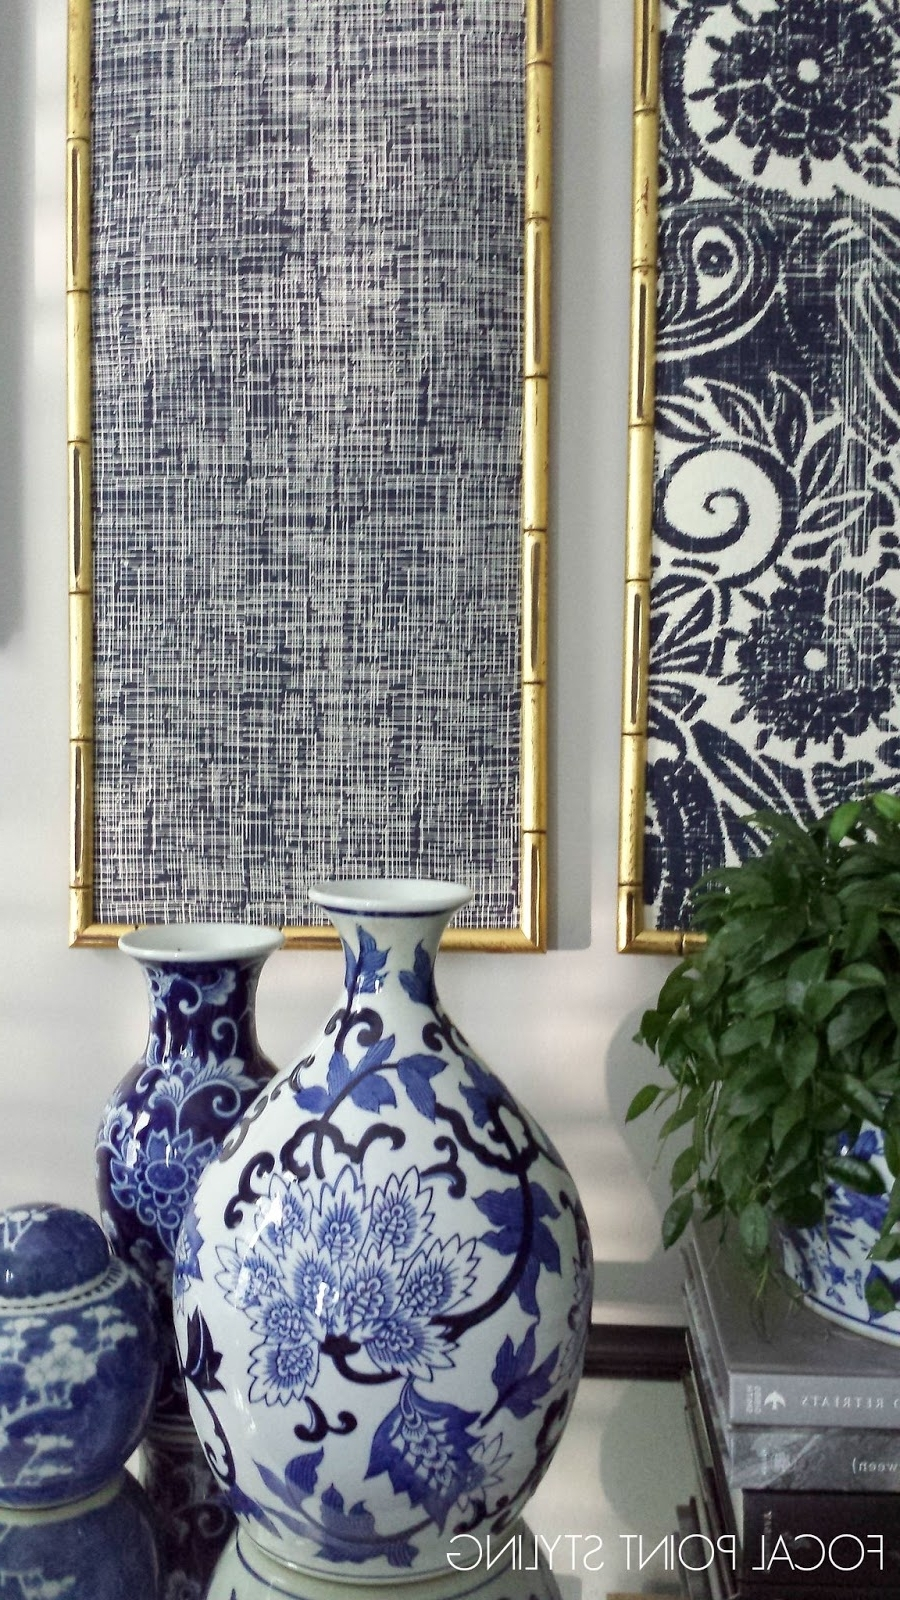 Framed Wall Art At Home And Interior Design Ideas Throughout Most Up To Date Ikat Fabric Wall Art (View 7 of 15)